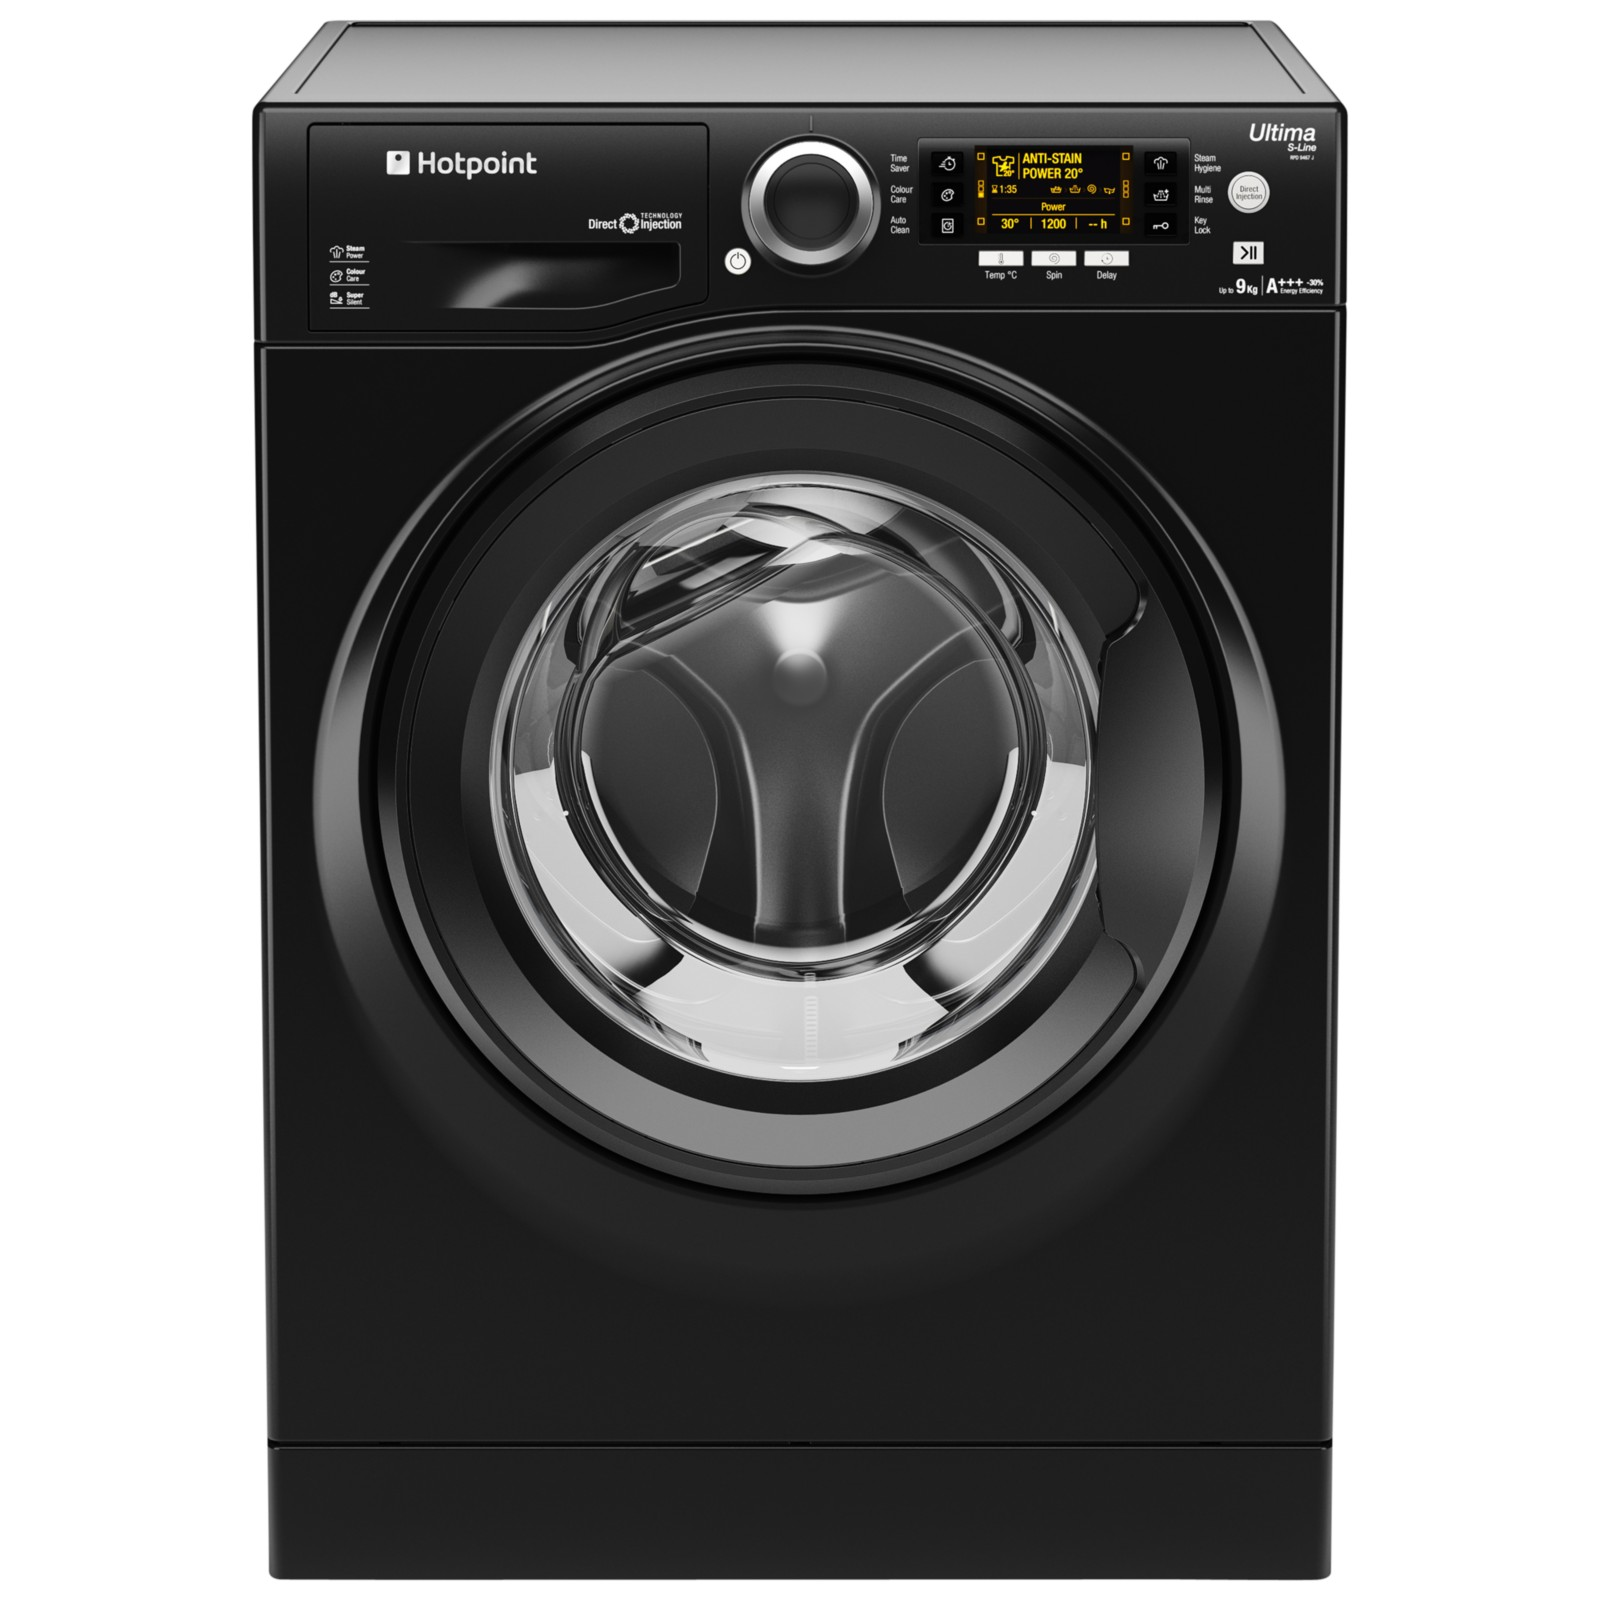 Hotpoint RPD9467JKK Ultima S-Line Freestanding Washing Machine